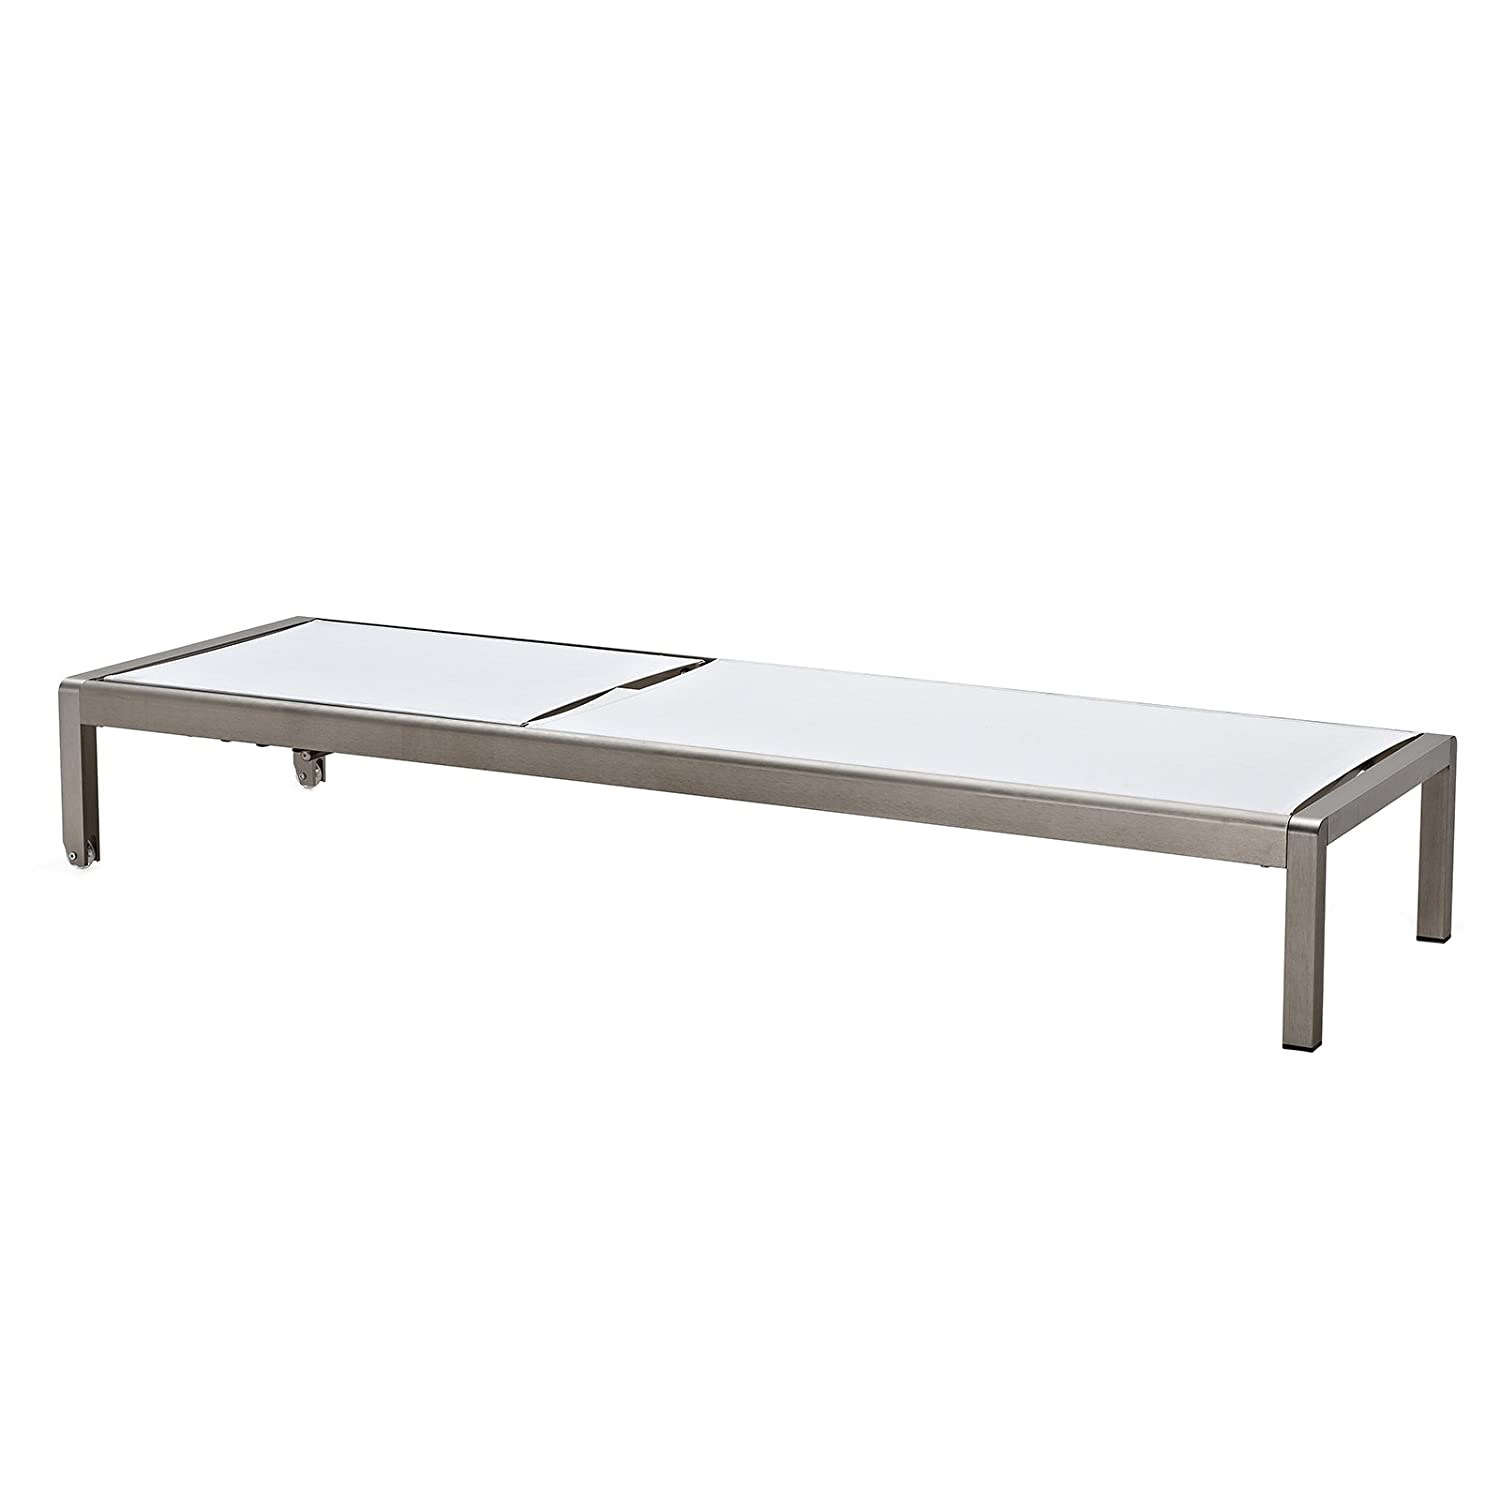 Meelano 200-WHI M200 Outdoor Chaise Lounge, Anodized Aluminum White